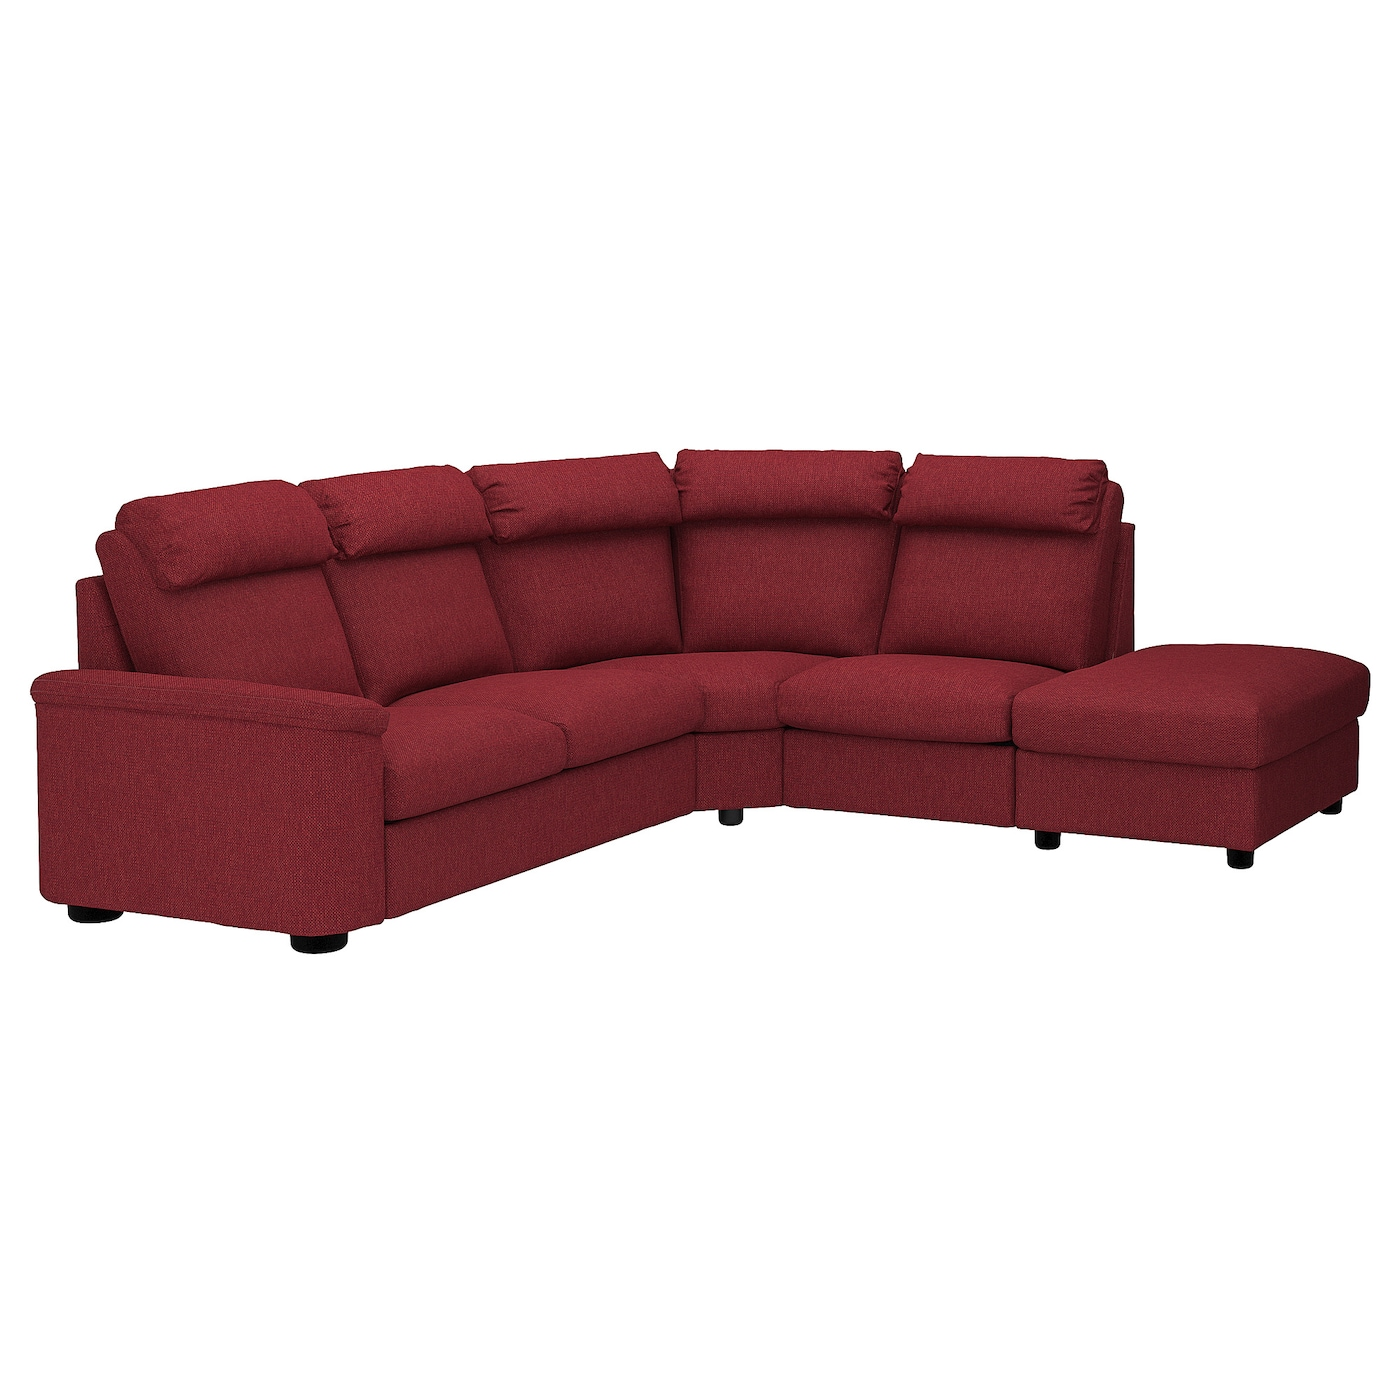 Ikea Lidhult Corner Sofa 5 Seat 10 Year Guarantee Read About The Terms